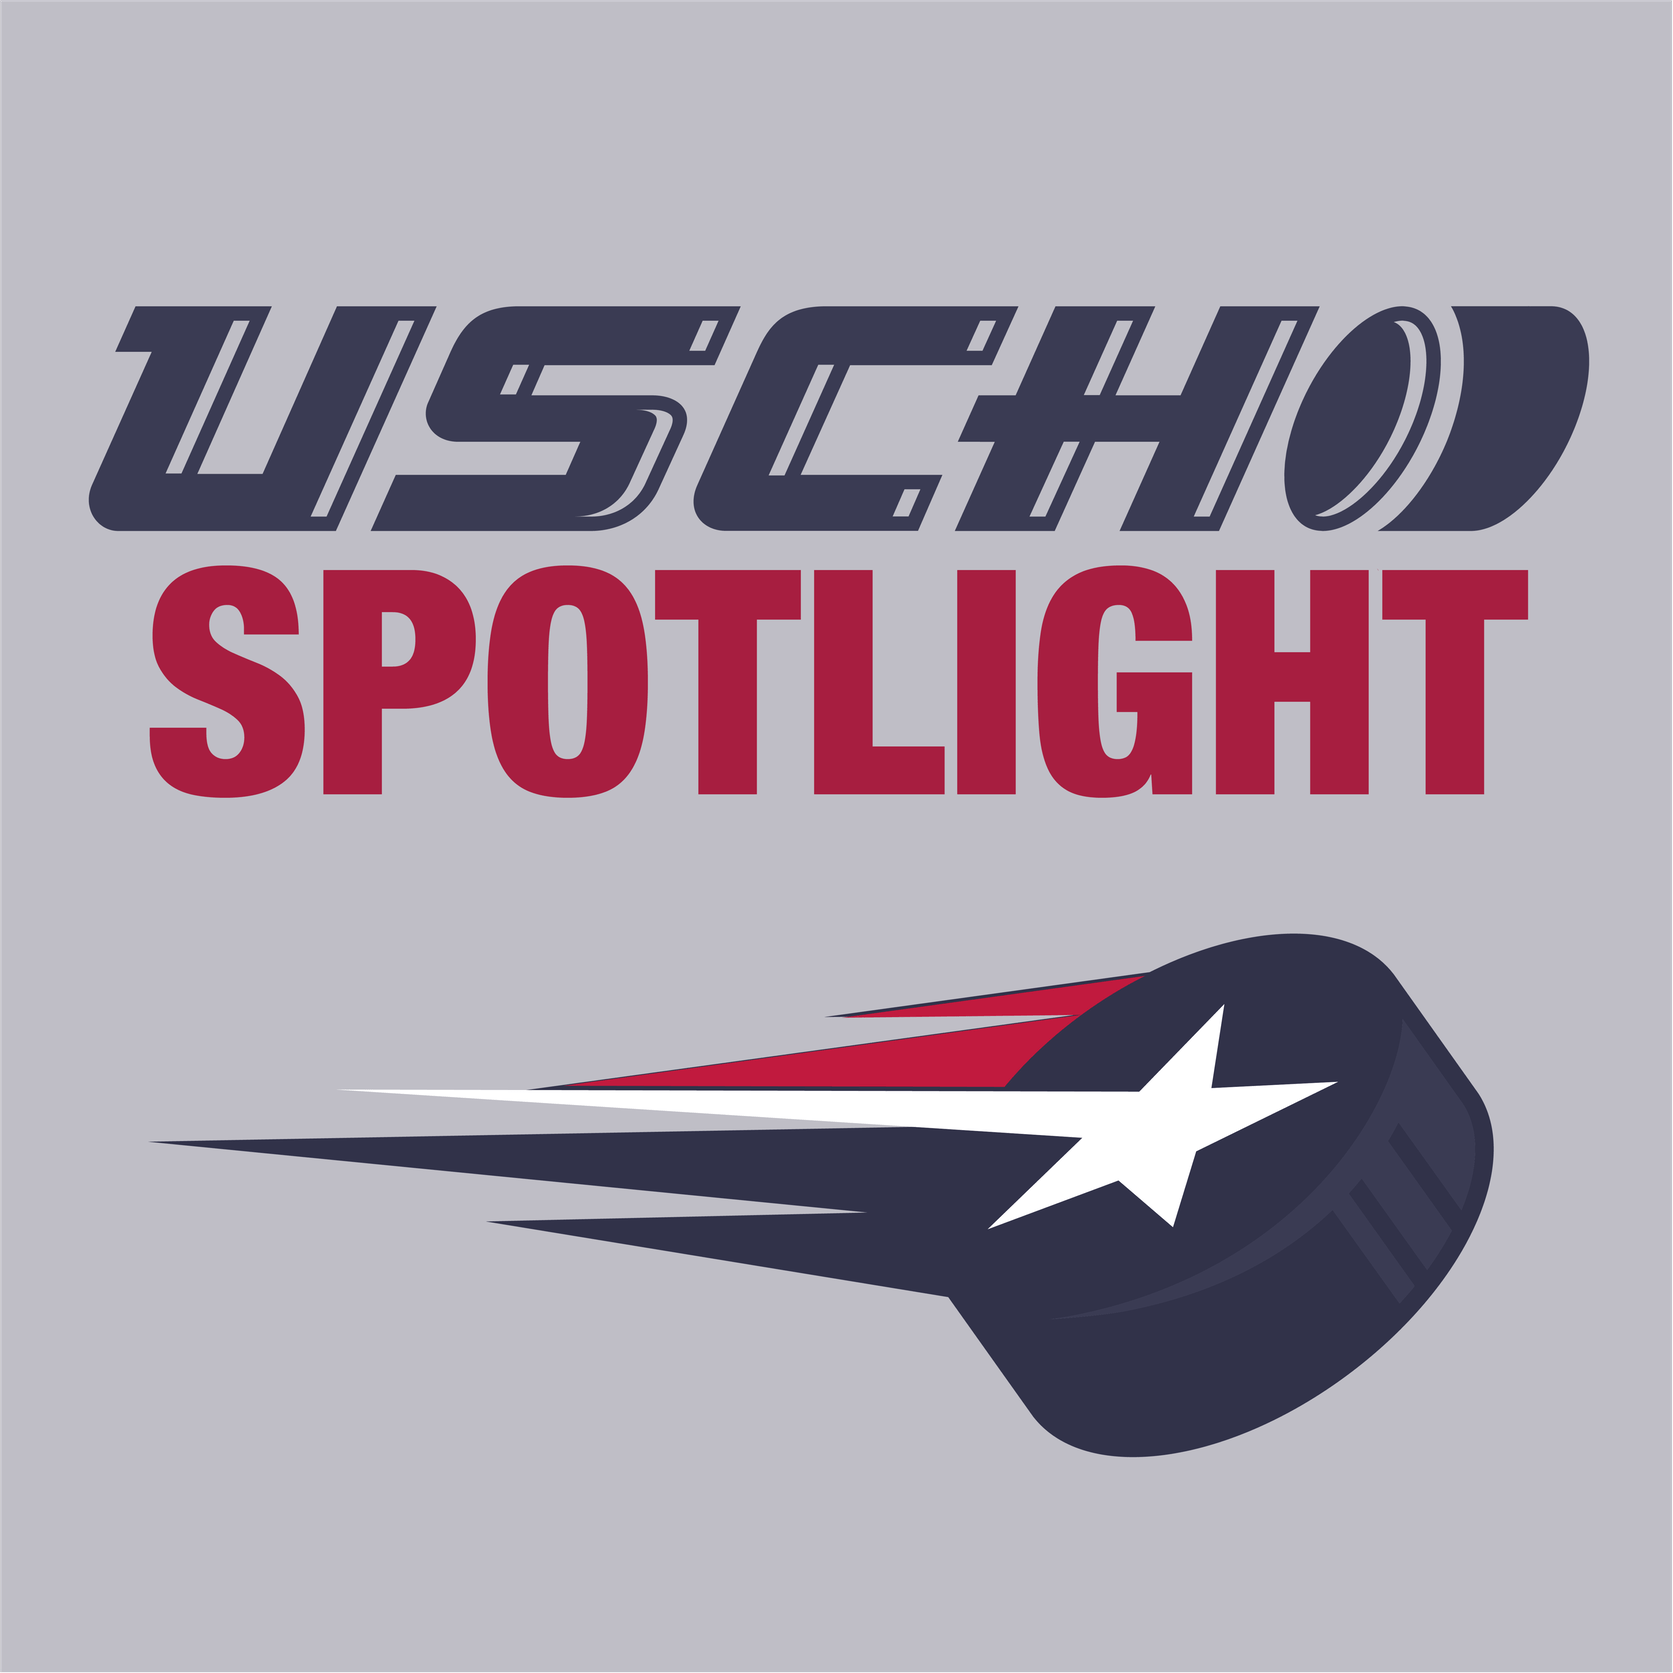 Army West Point's Brian Riley talks Black Knights, AHA expansion, 3v3 OT adoption, video: USCHO Spotlight Season 2 Episode 9